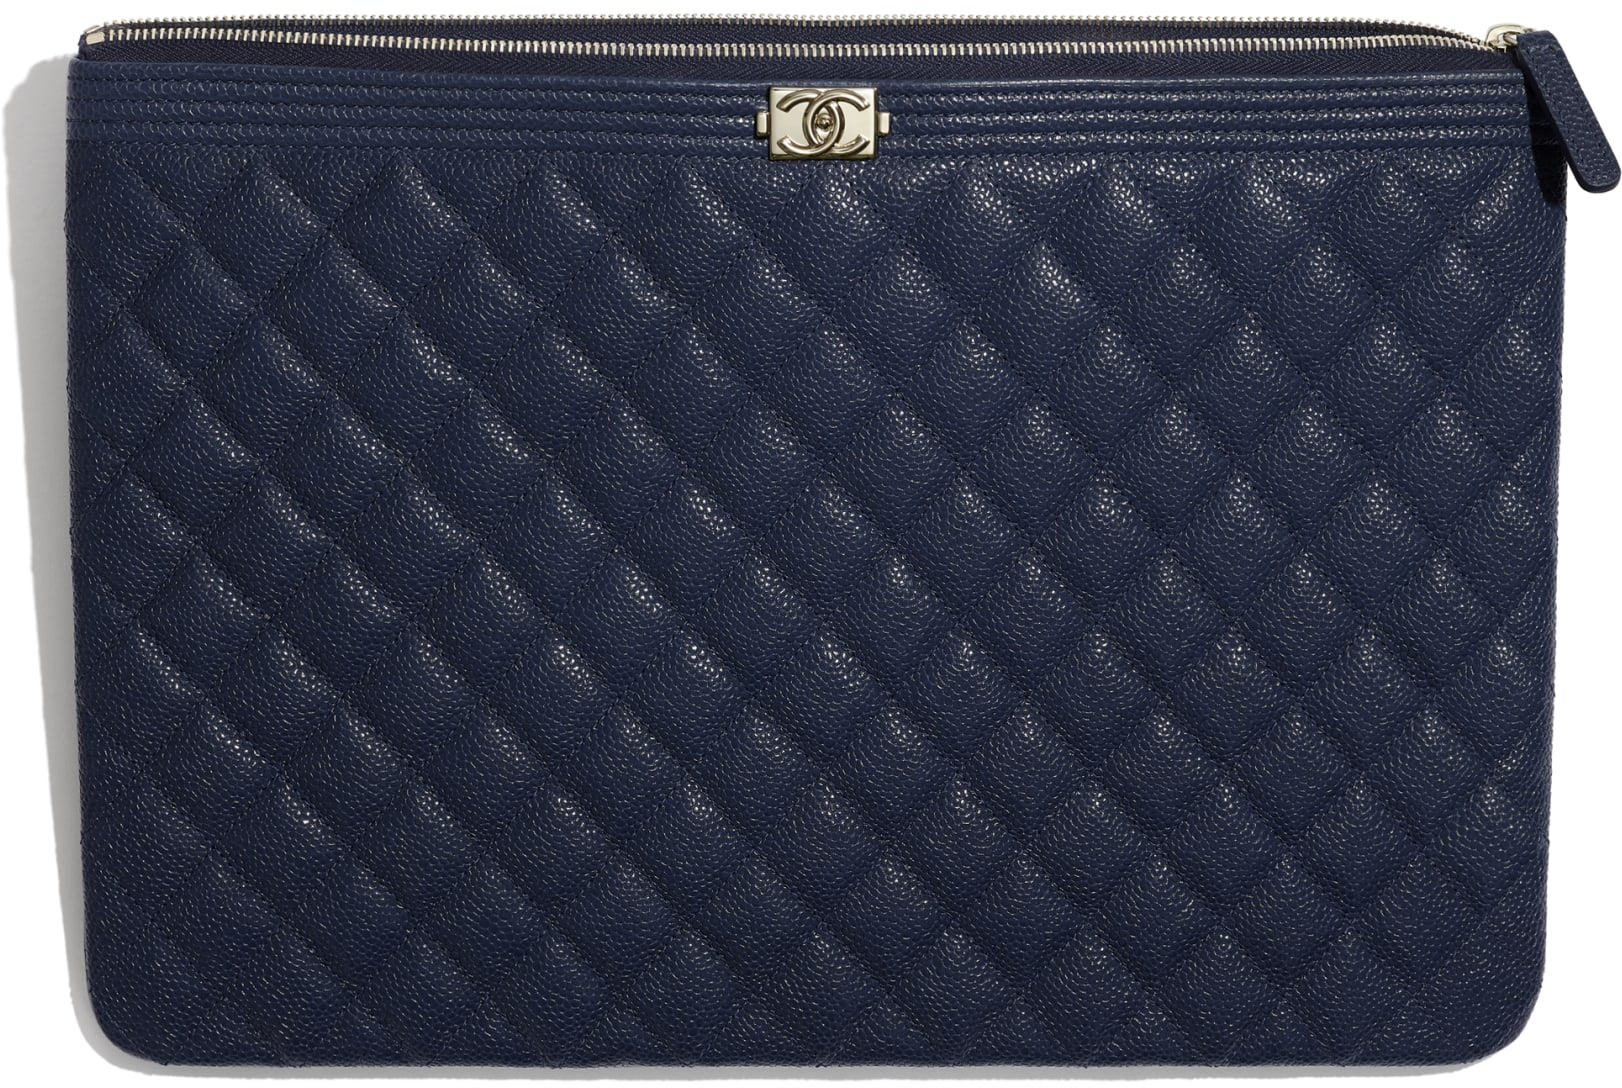 BOY CHANEL Large Pouch